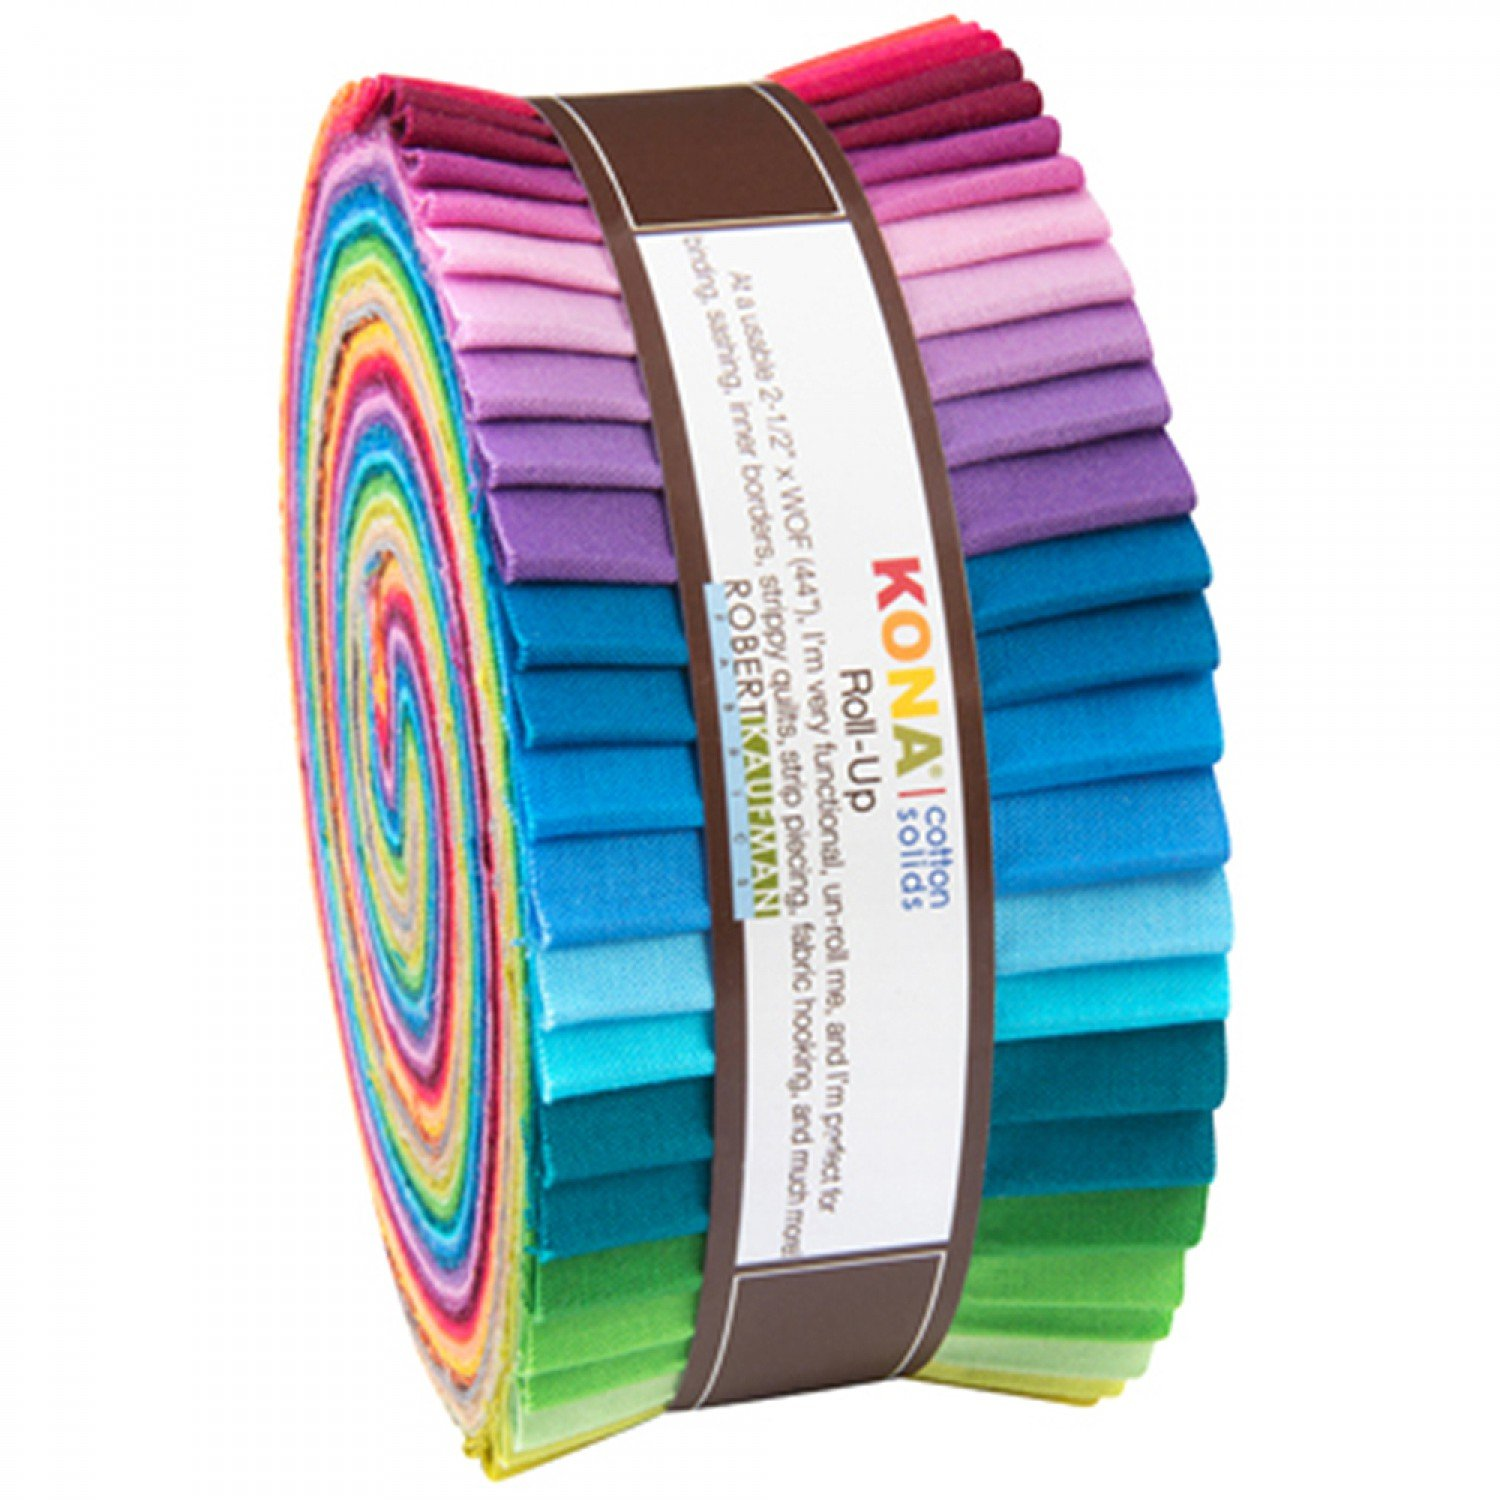 Kona Cotton 2014 New Colors 2.5 Jelly Roll - 40 pcs | Robert Kaufman